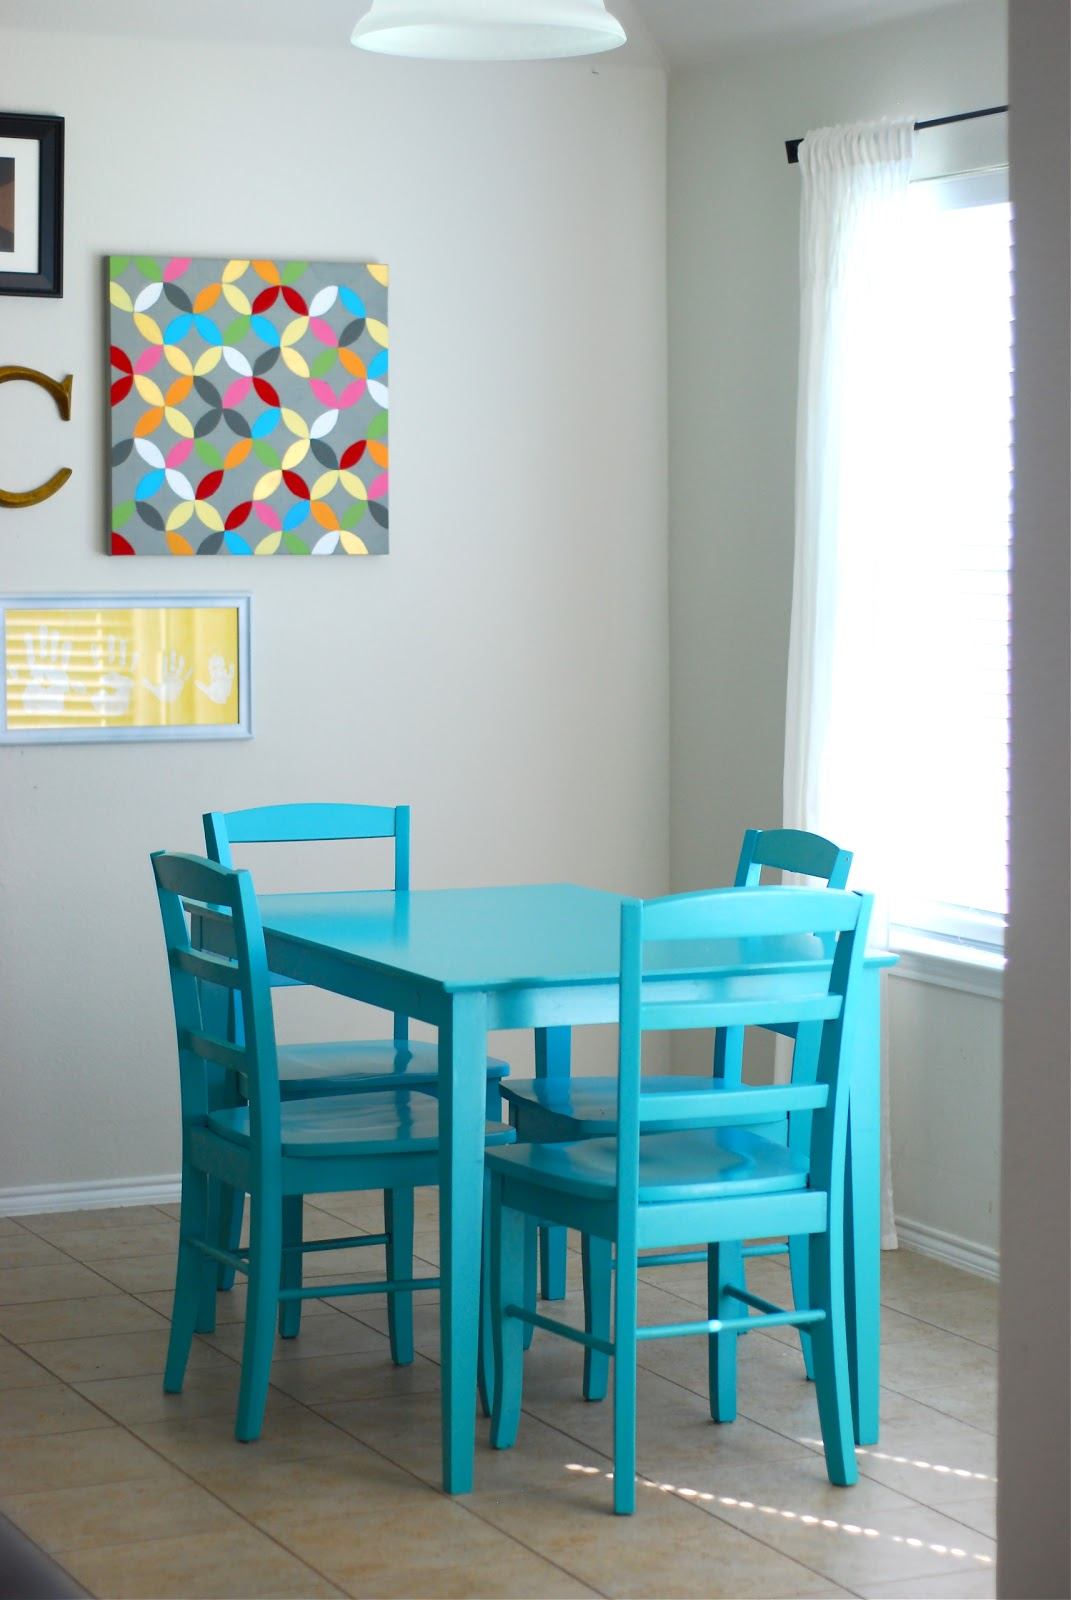 better than i could have imagined: our kitchen table makeover...